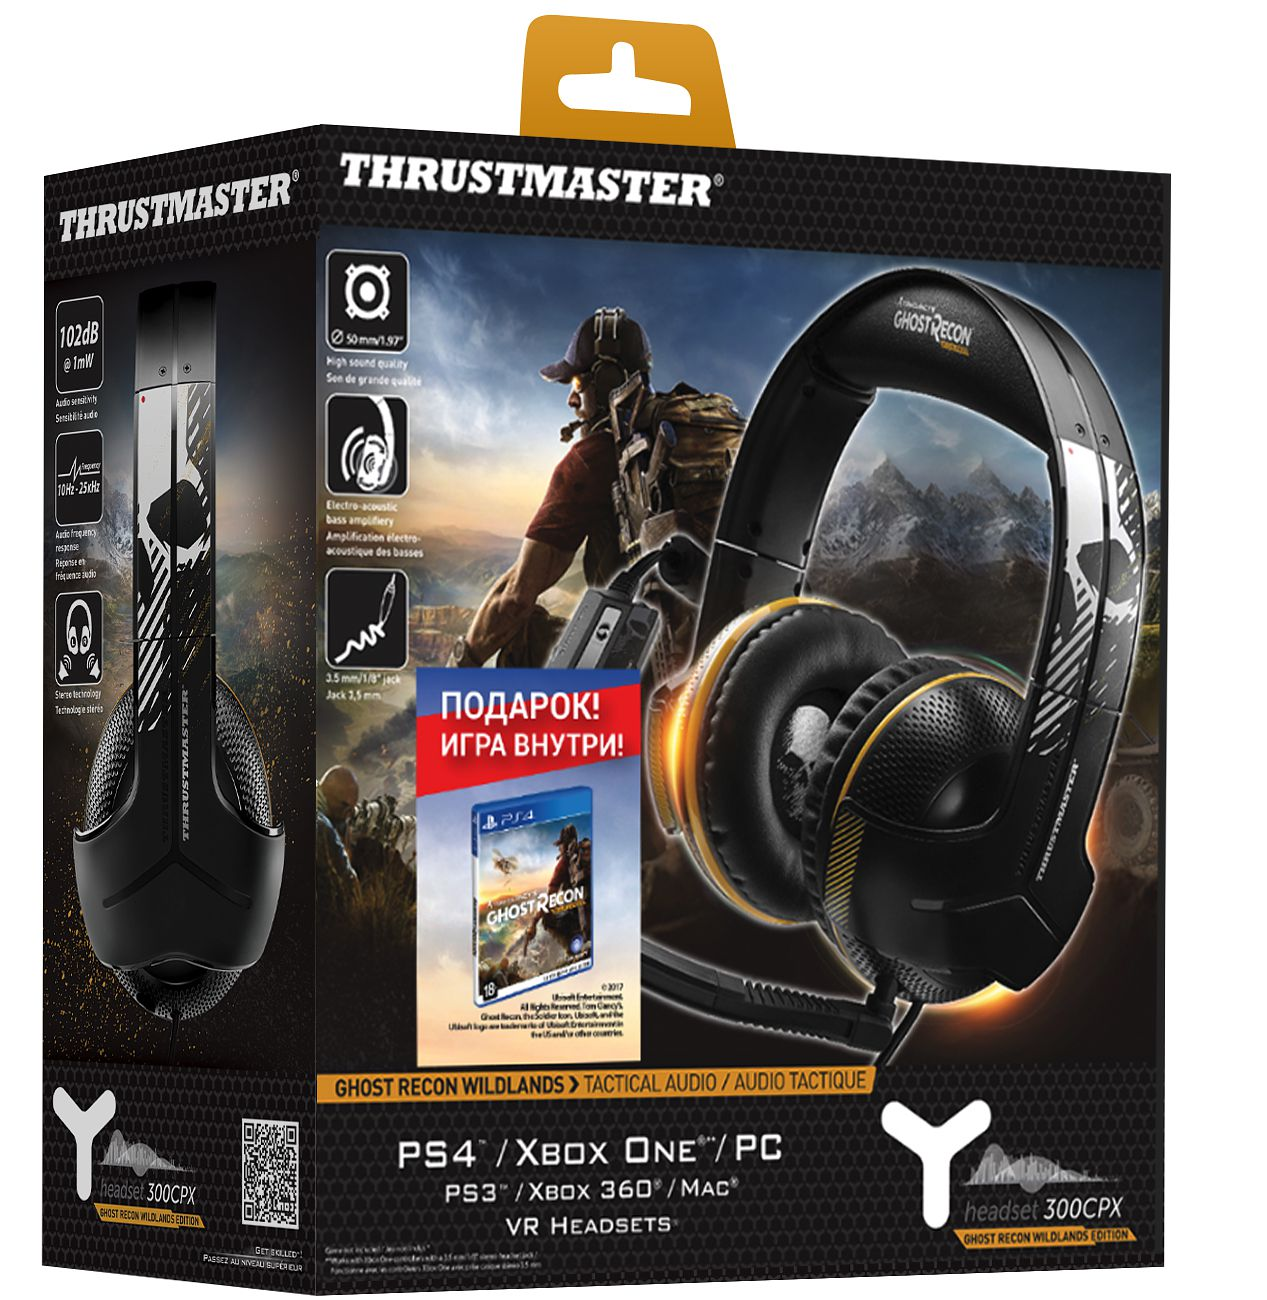 все цены на Игровая гарнитура Thrustmaster Y300CPX Ghost Recon Wildlands Edition для PS4 / PS3 / Xbox One / Xbox 360 / PC + игра Tom Clancy's Ghost Recon: Wildlands [PS4] онлайн